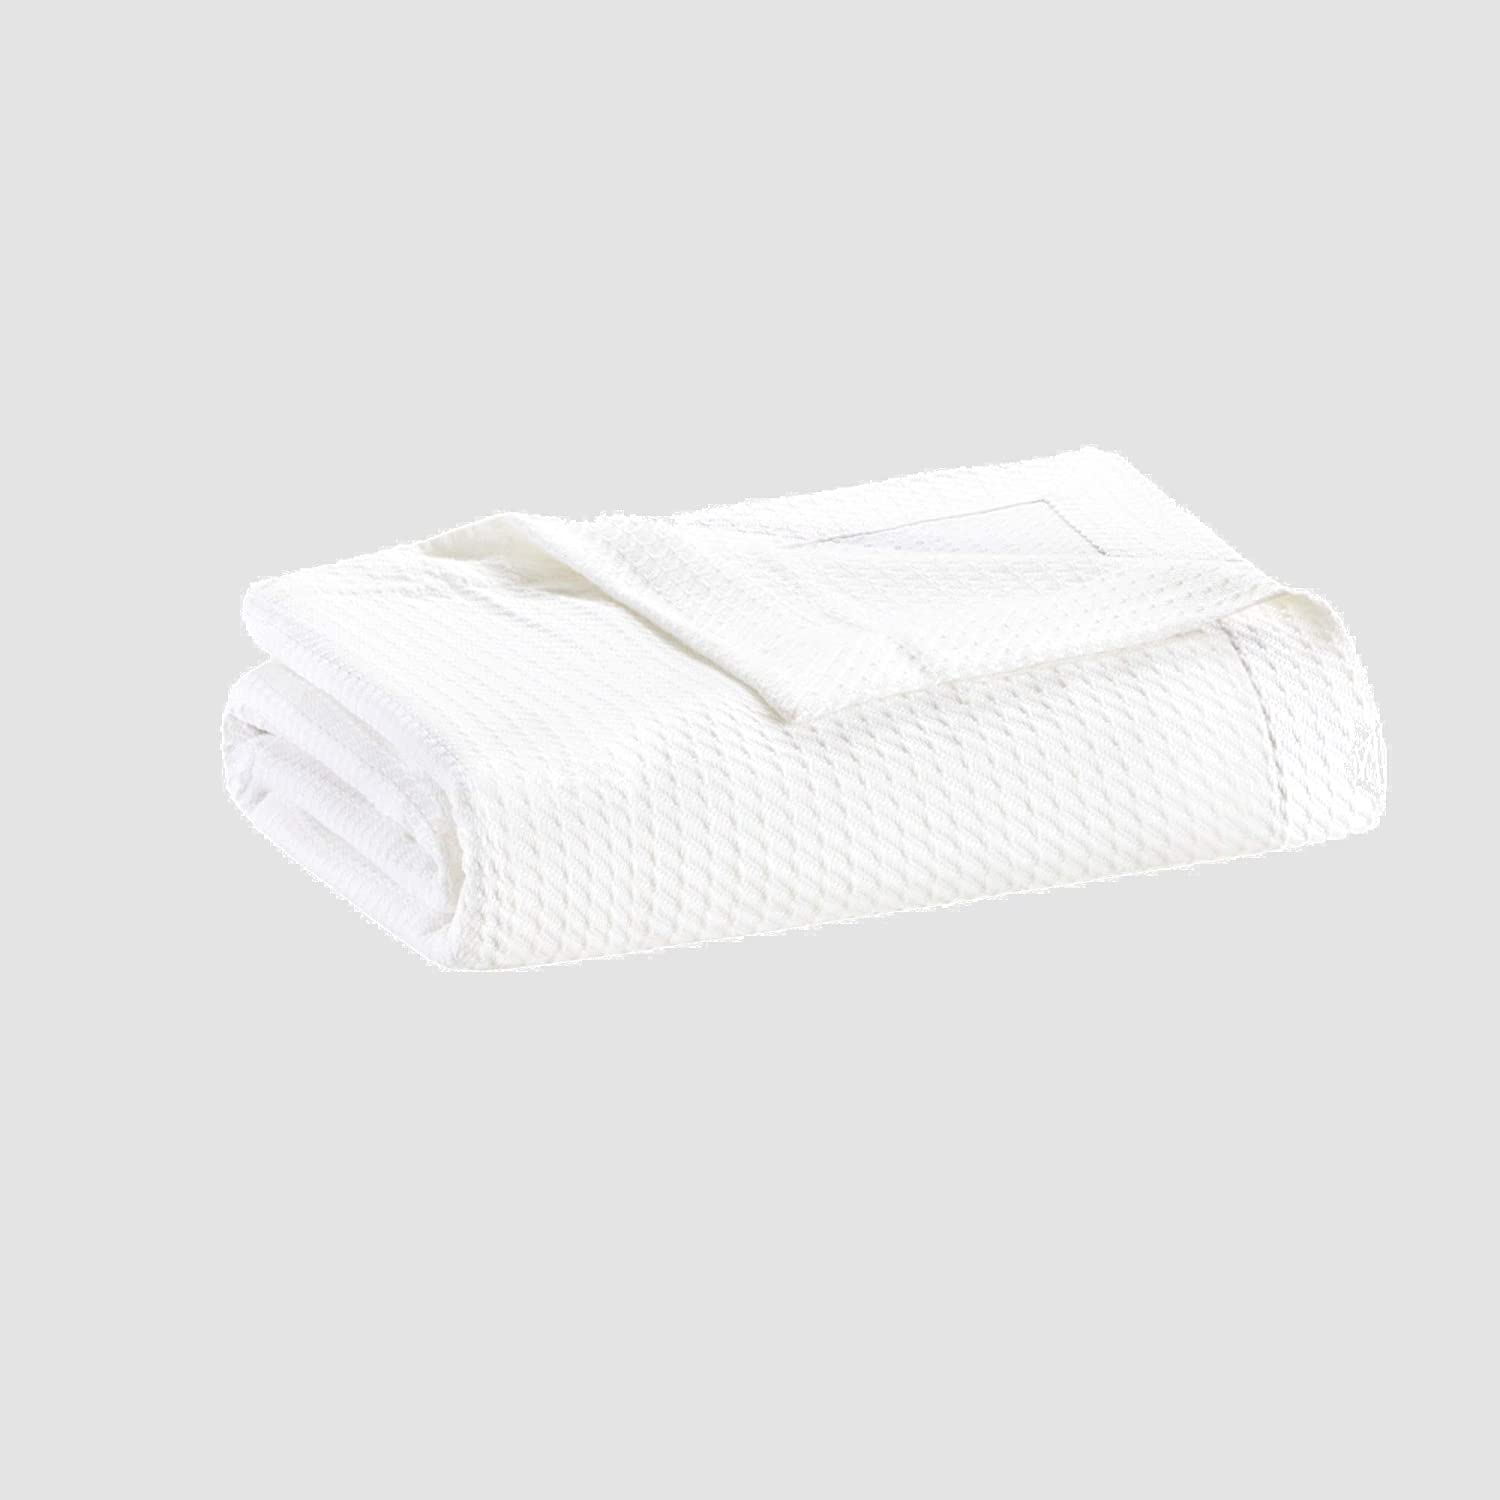 Madison Park Egyptian Cotton Luxury Blanket White 90x90 Full/Queen Size Knit Premium Soft Cozy 100% Cerified Egyptian Cotton For Bed, Couch or Sofa